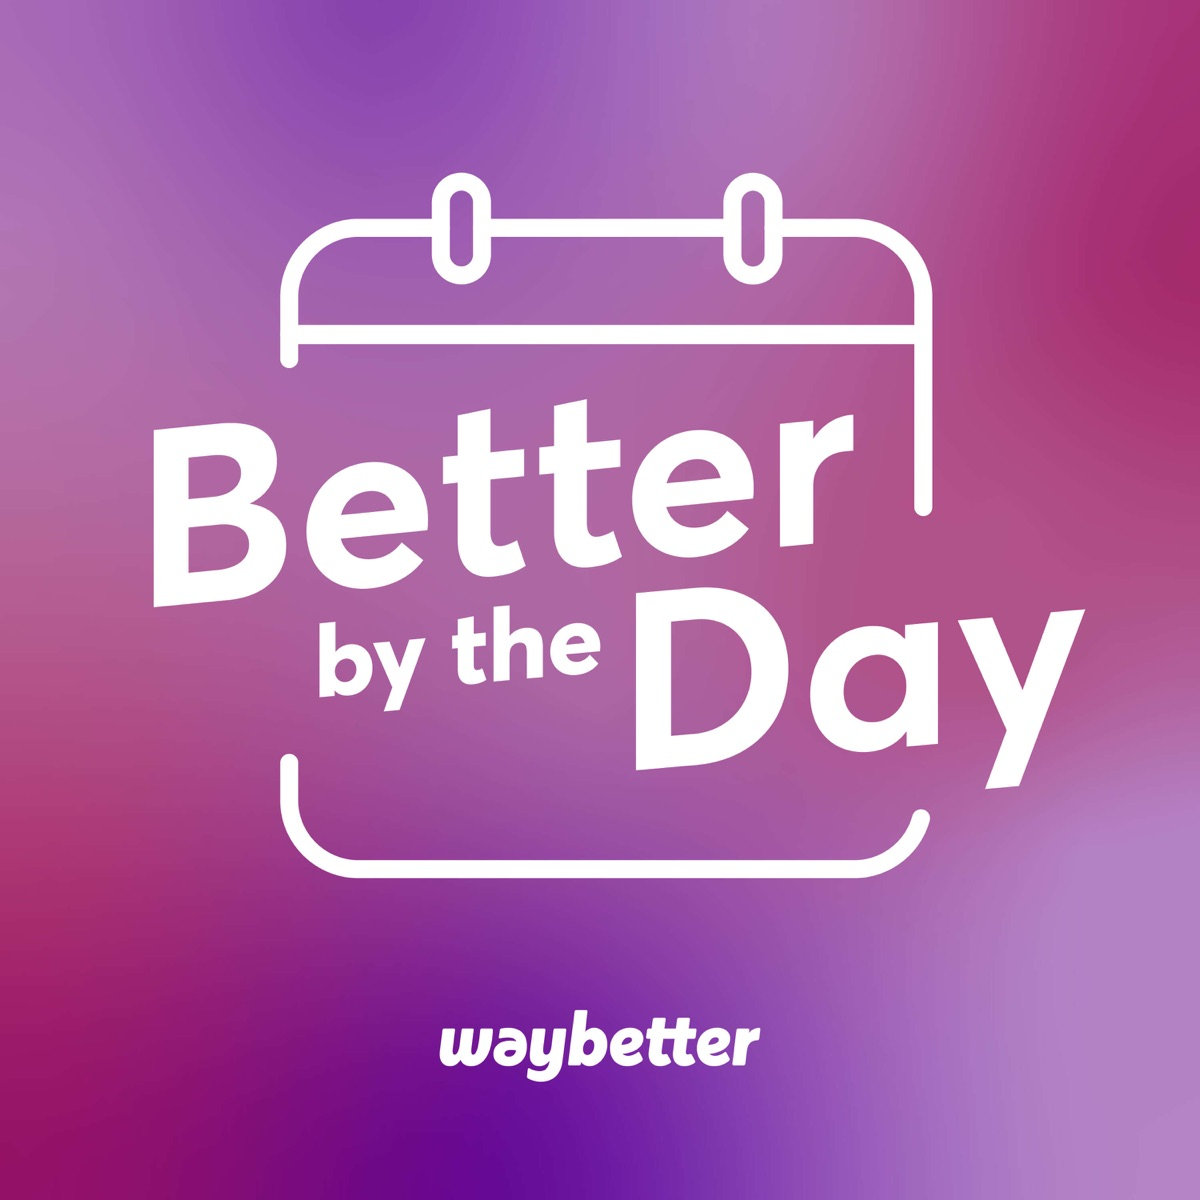 Better by the Day